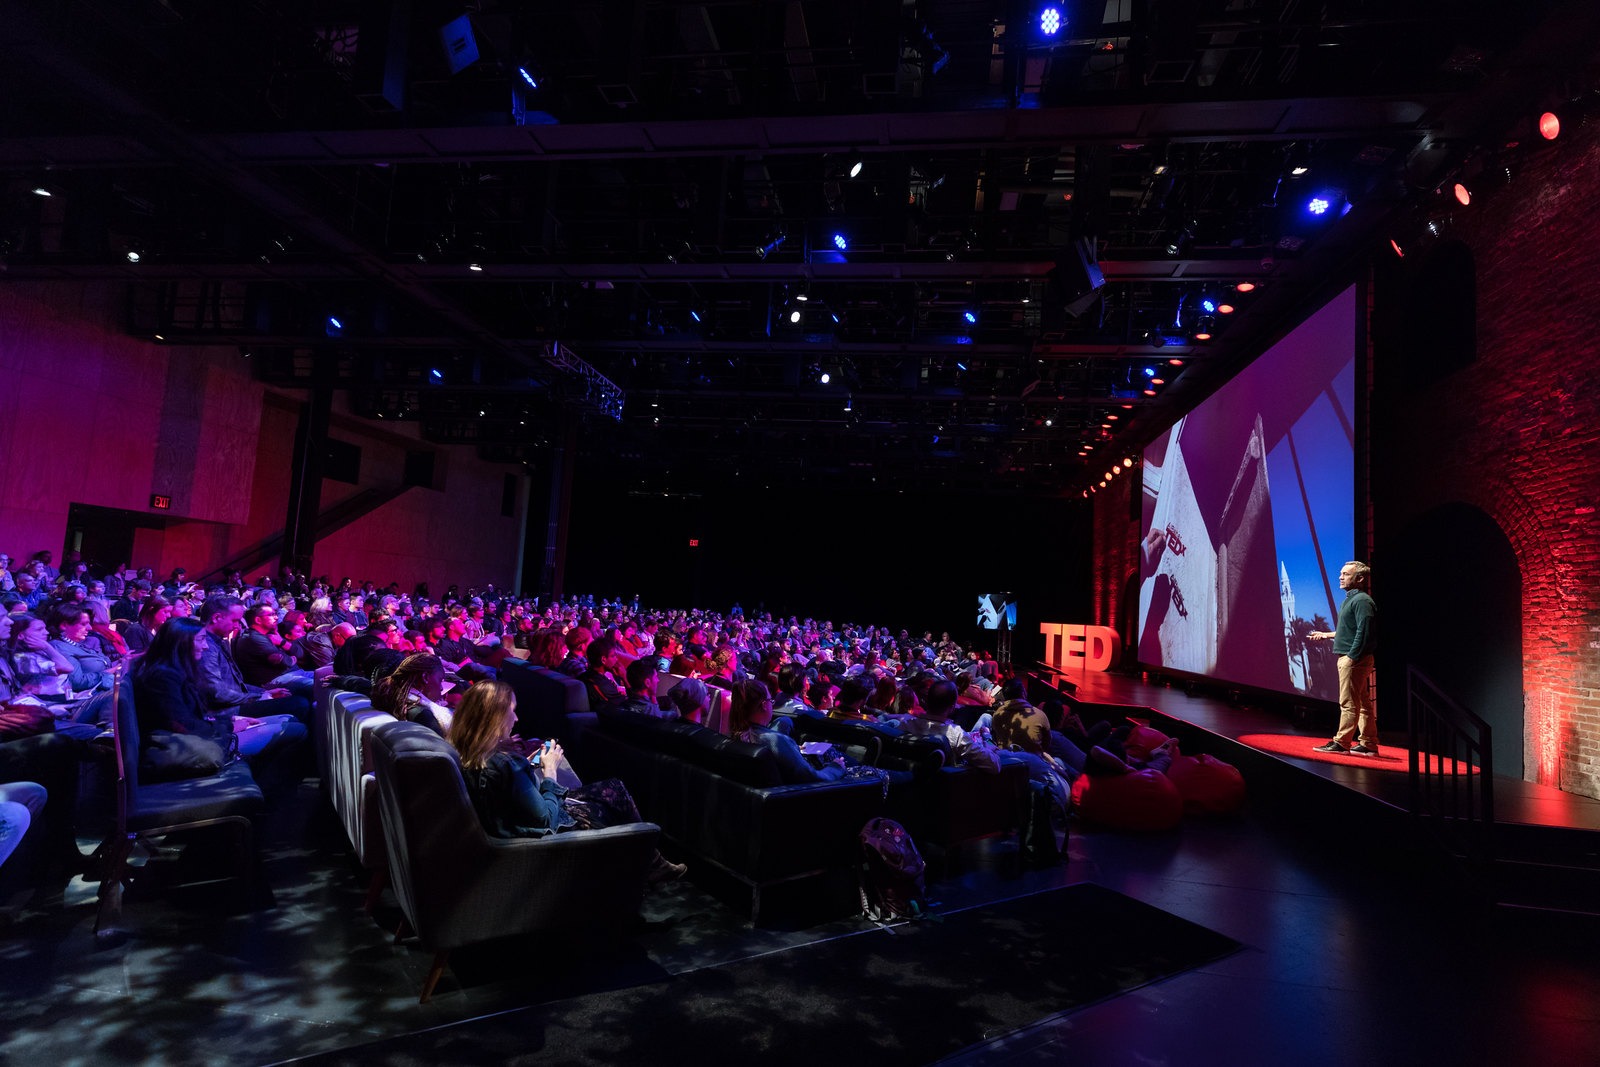 TEDFest is a simulcast experience around the livestream of TED2018 - The Age of Amazement, in the vibrant Brooklyn neighborhood of DUMBO, April 10-14, 2018. New York, NY. Photo: Dian Lofton / TED